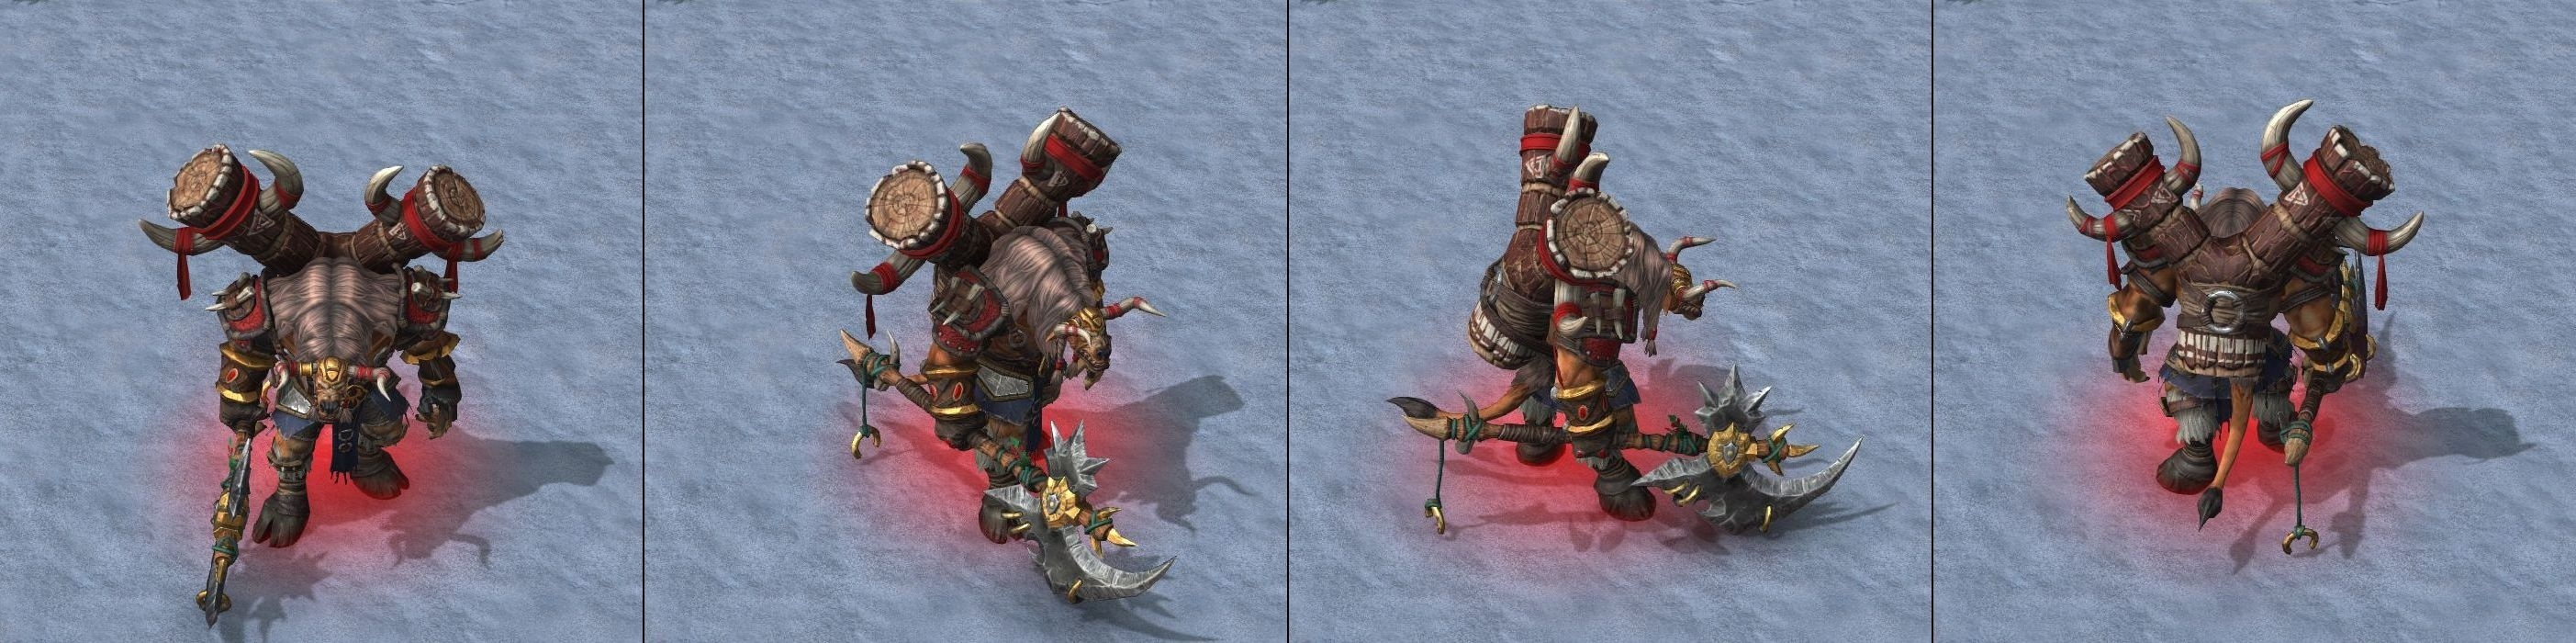 Warcraft 3 Reforged Tauren Chieftain